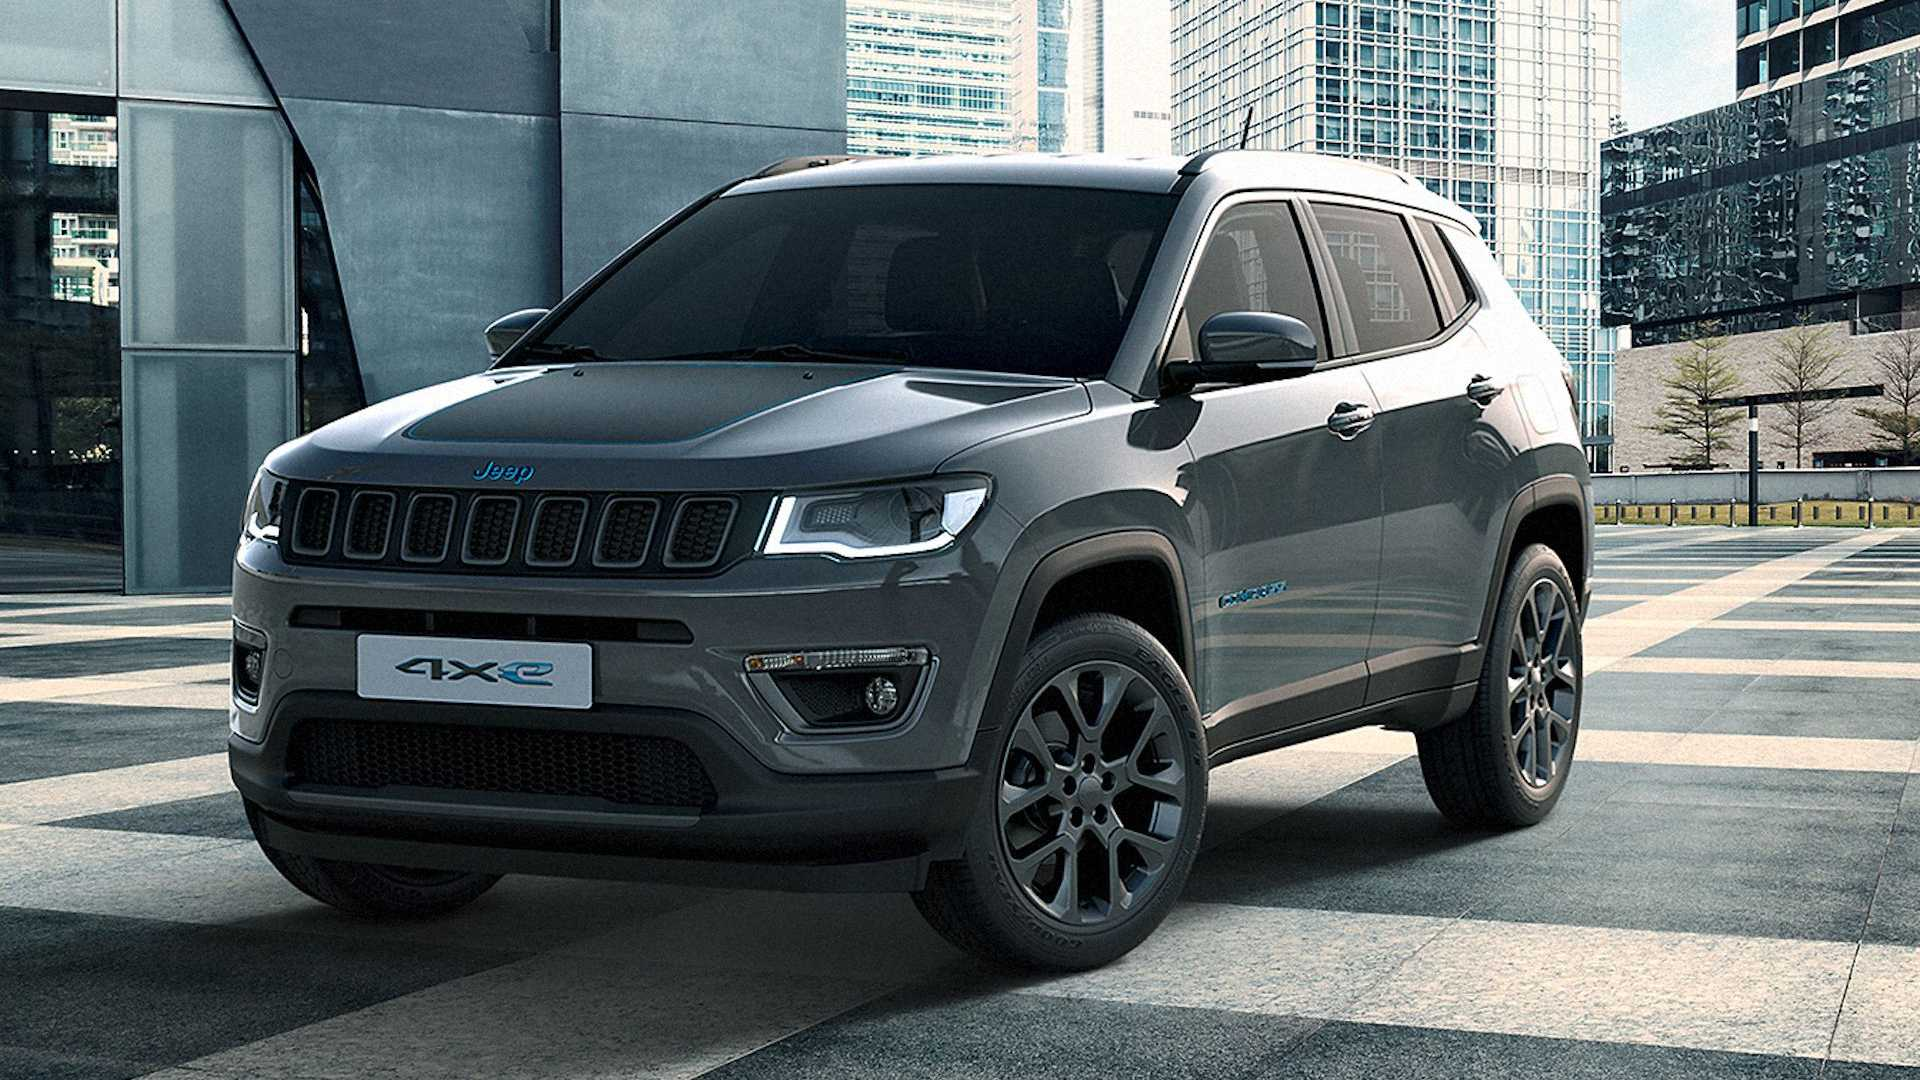 COMING SOON Jeep Compass 4xe (hybrid)